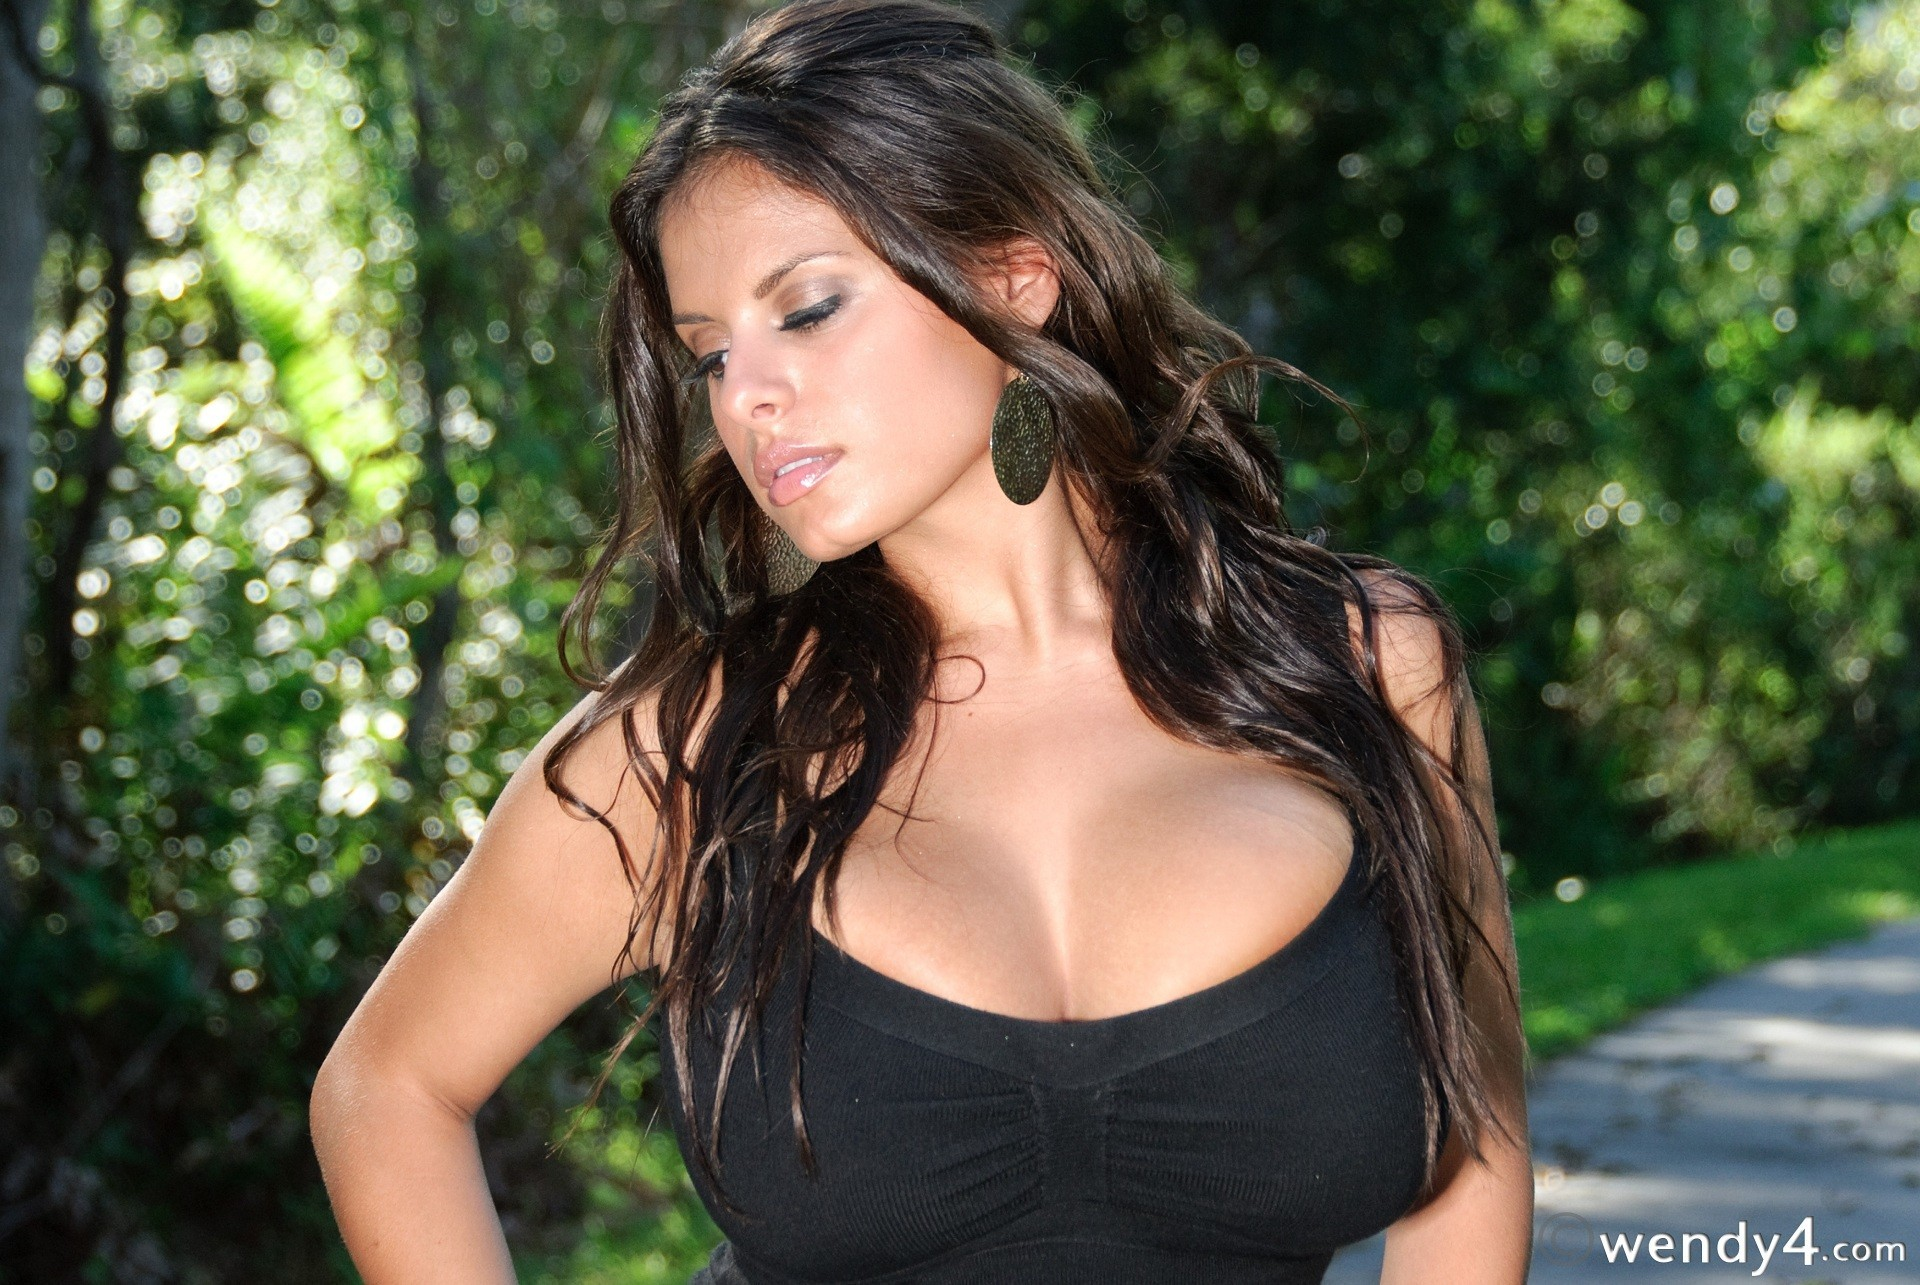 brunettes woman cleavage models HD Wallpaper